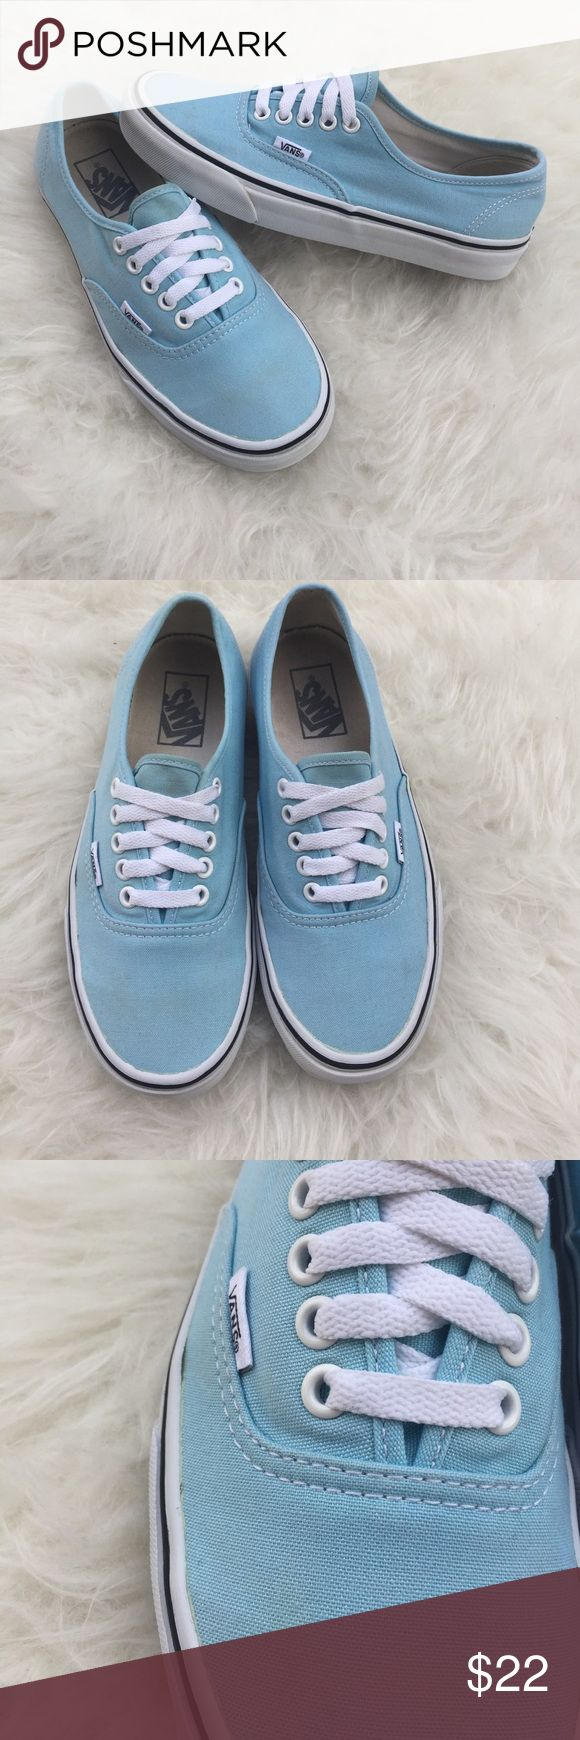 Light blue vans. Blue vans. Women's blue vans. van Good used condition women's size 8 blue Vans. Light wear, some dirt spots on the canvas. Overall good condition. Please review photos for details. No trades. Vans Shoes Sneakers